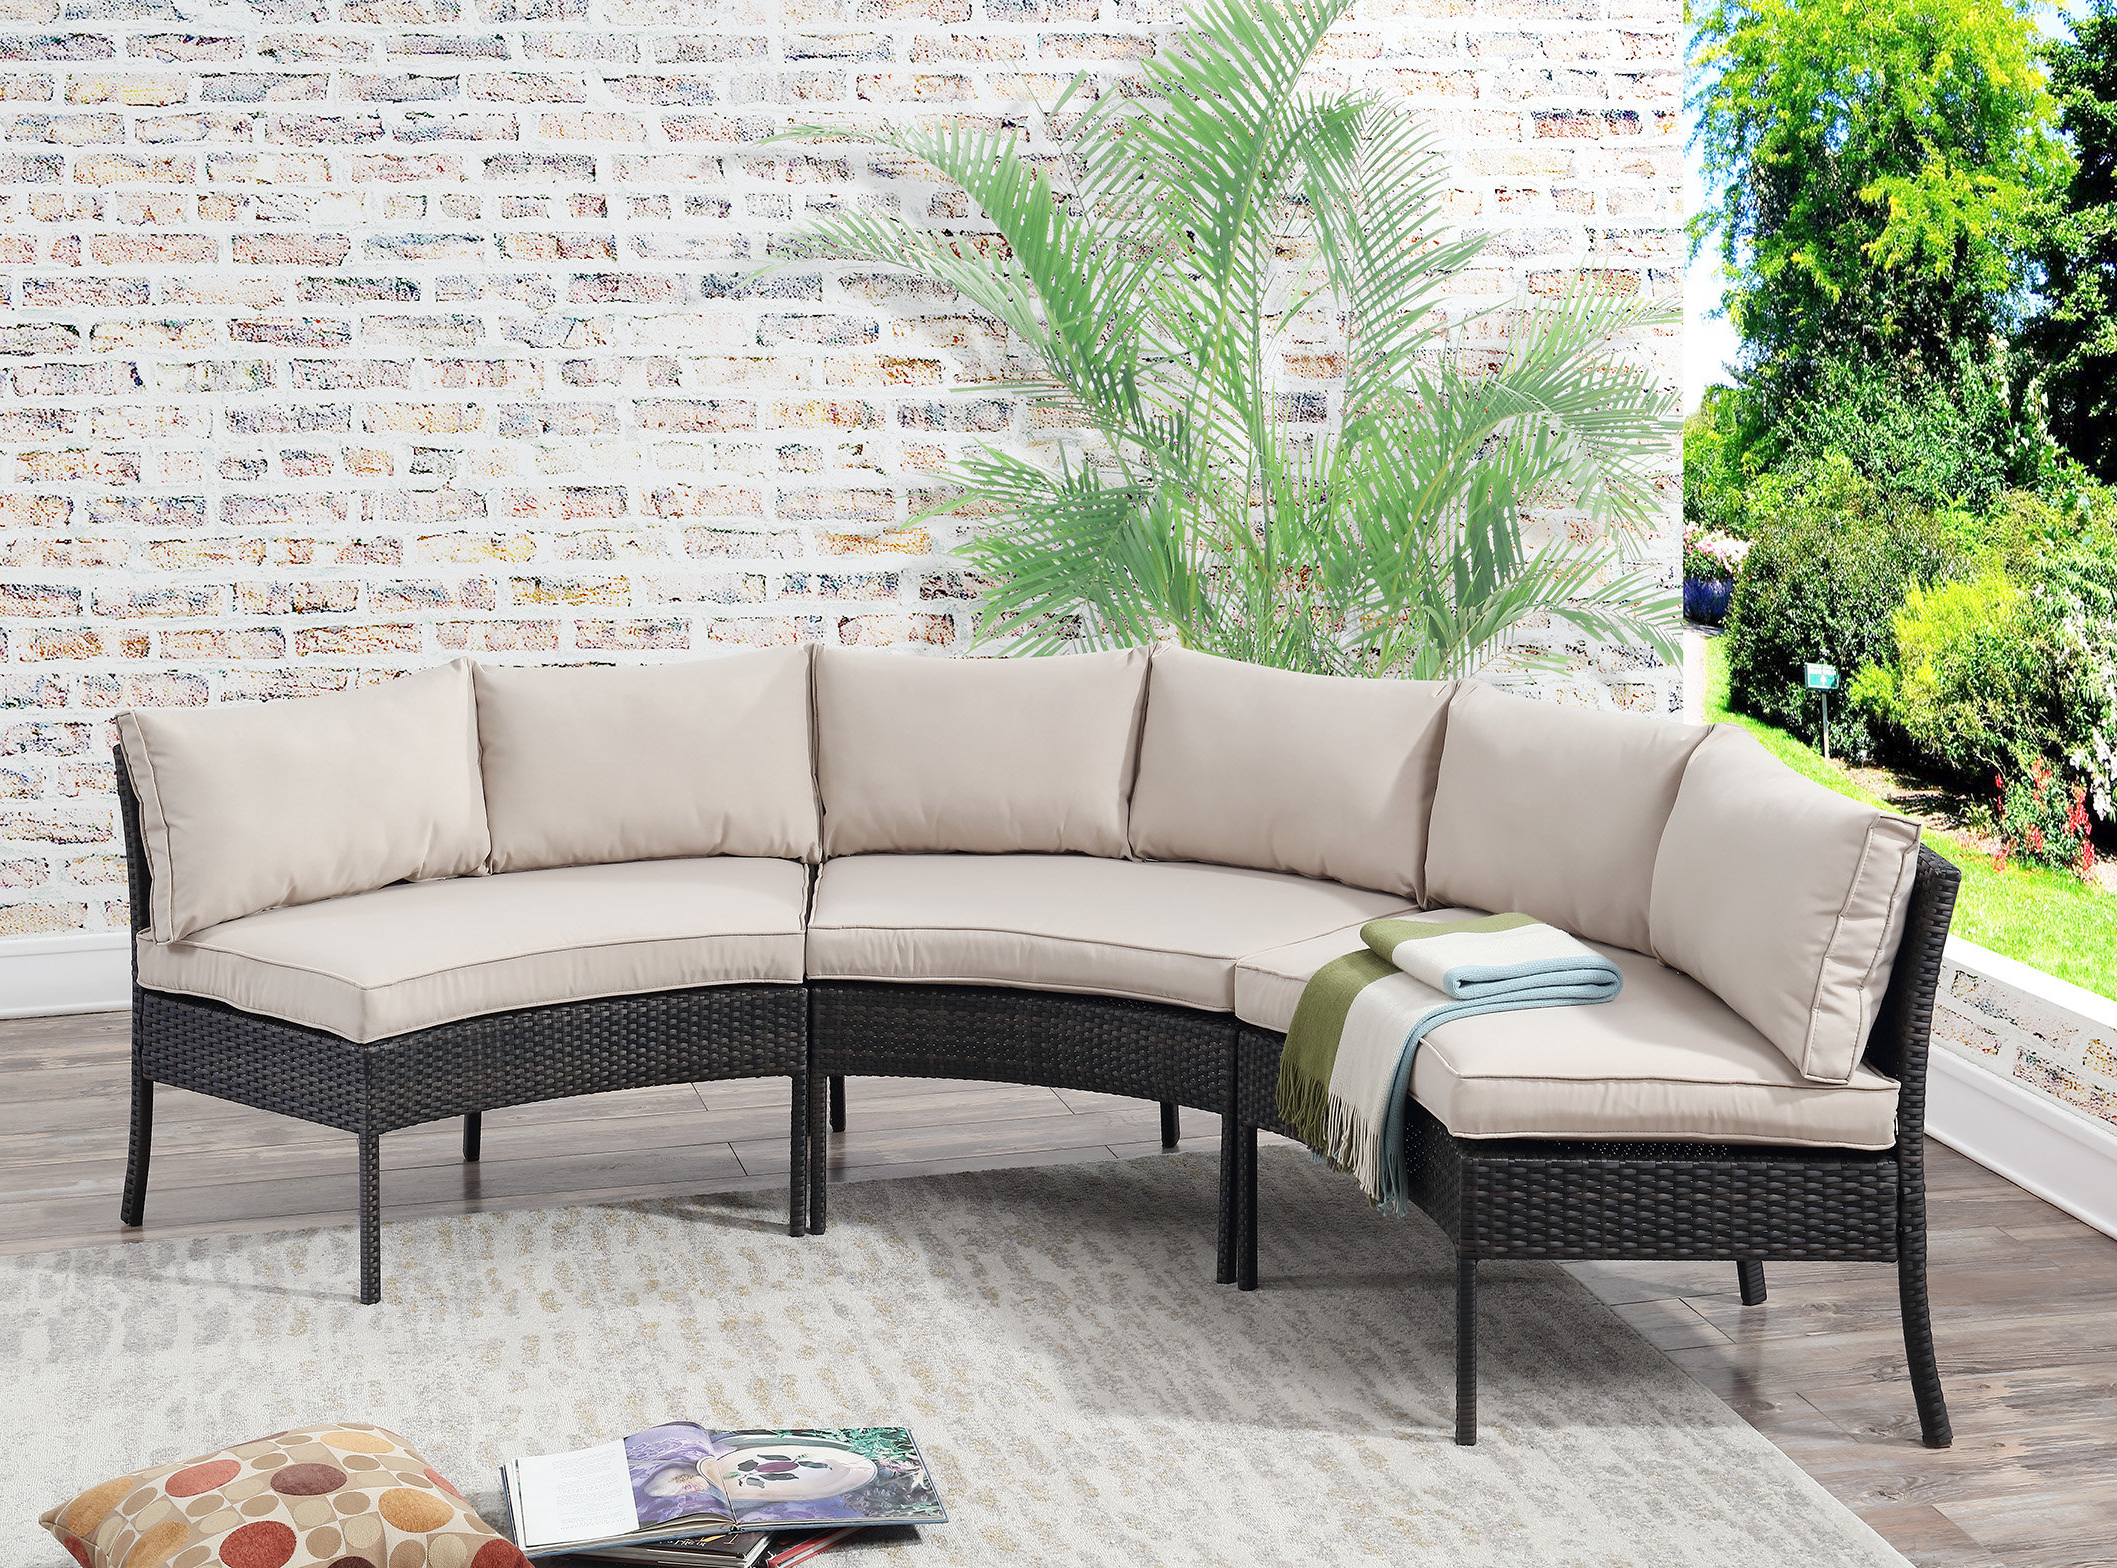 Clifford Patio Sofas With Cushions Within 2020 Purington Circular Patio Sectional With Cushions (View 4 of 20)